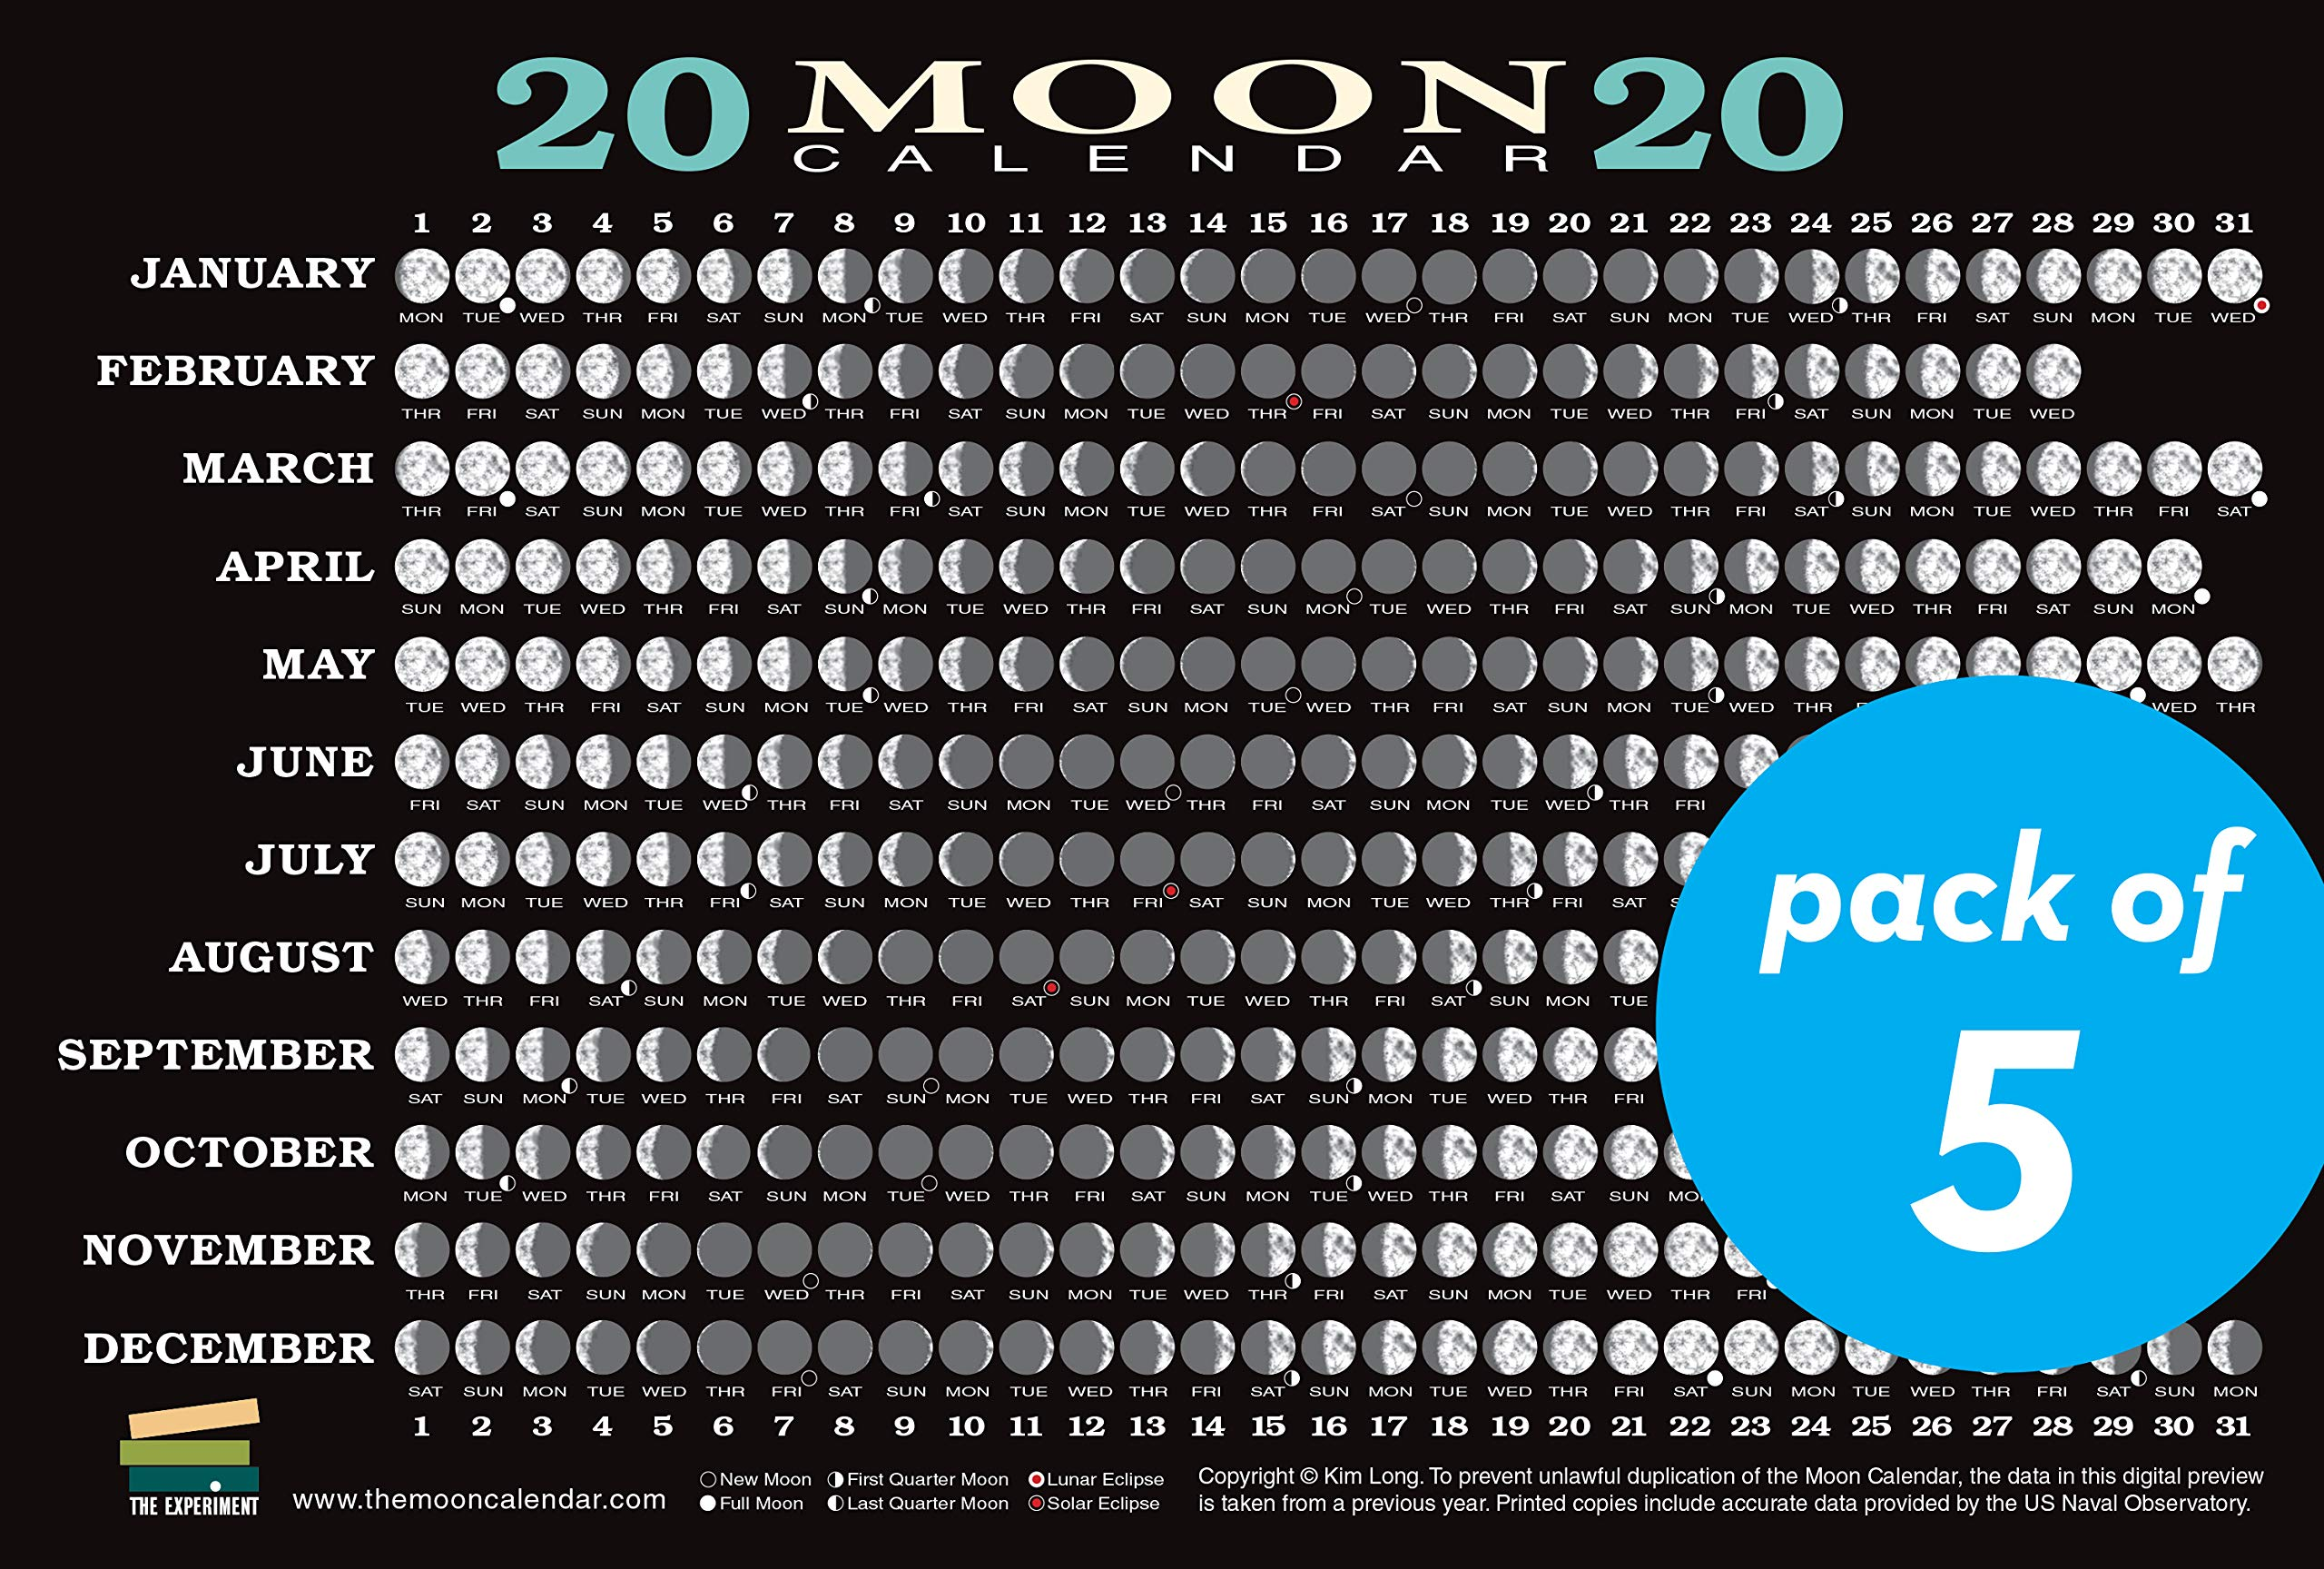 Lunar Calendar For 2020 2020 Moon Calendar Card (5 pack): Lunar Phases, Eclipses, and More